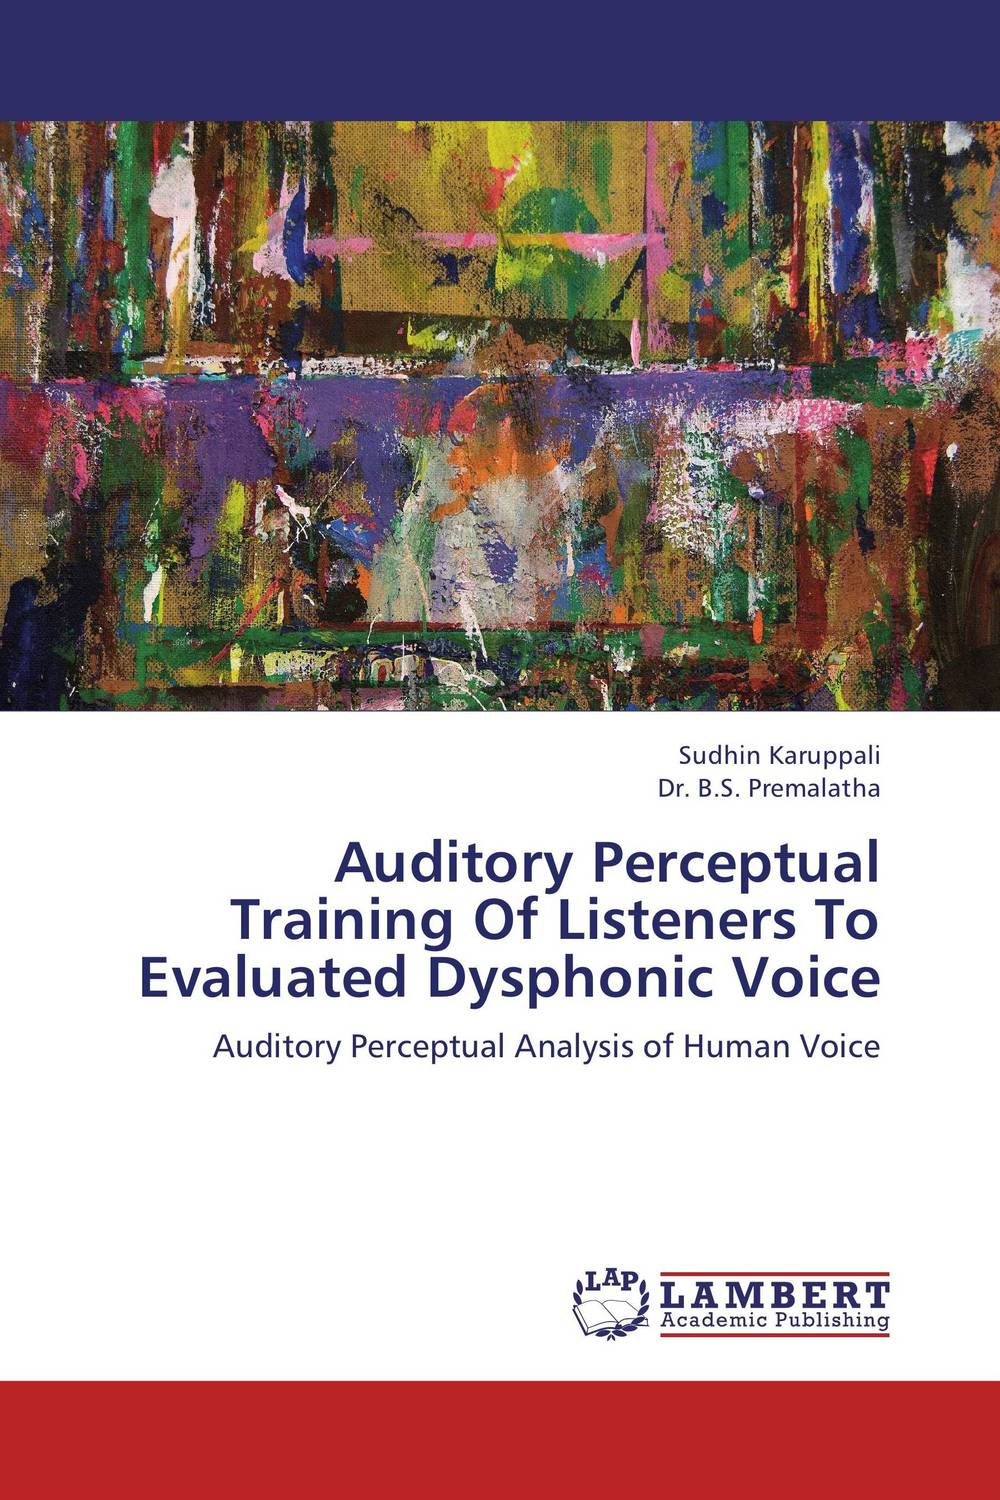 Auditory Perceptual Training Of Listeners To Evaluated Dysphonic Voice jill anne o sullivan validating academic training versus industry training using erp